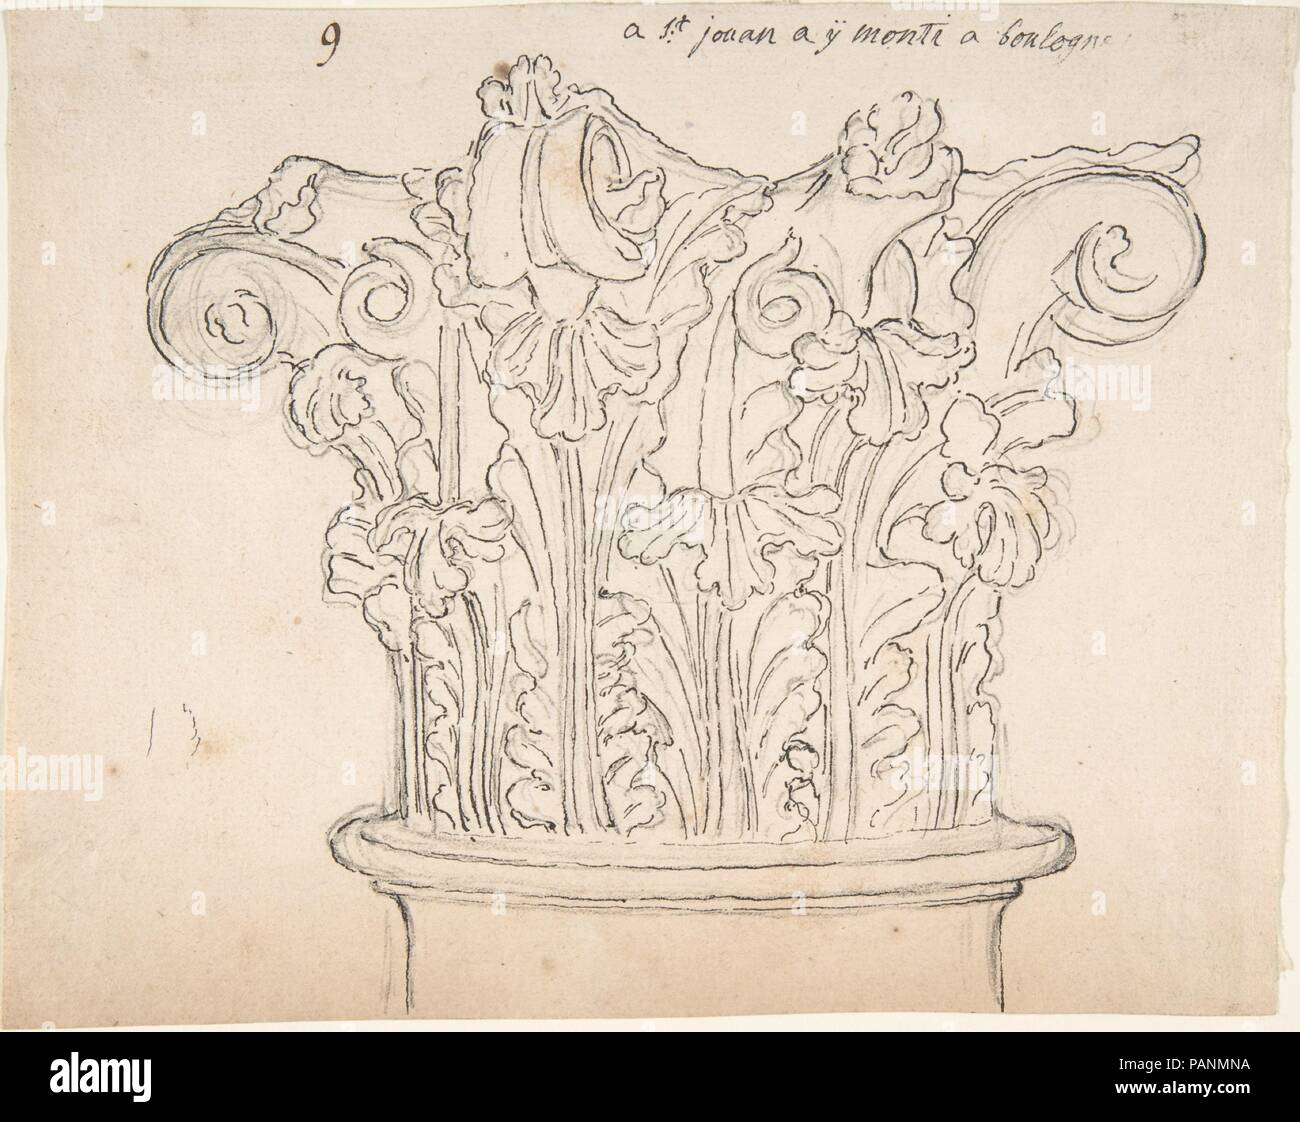 Capital with Acanthus Leaves. Artist: Anonymous, French, 18th century. Dimensions: 6 3/8 x 8 in. (16.2 x 20.3 cm). Date: 18th century. Museum: Metropolitan Museum of Art, New York, USA. - Stock Image